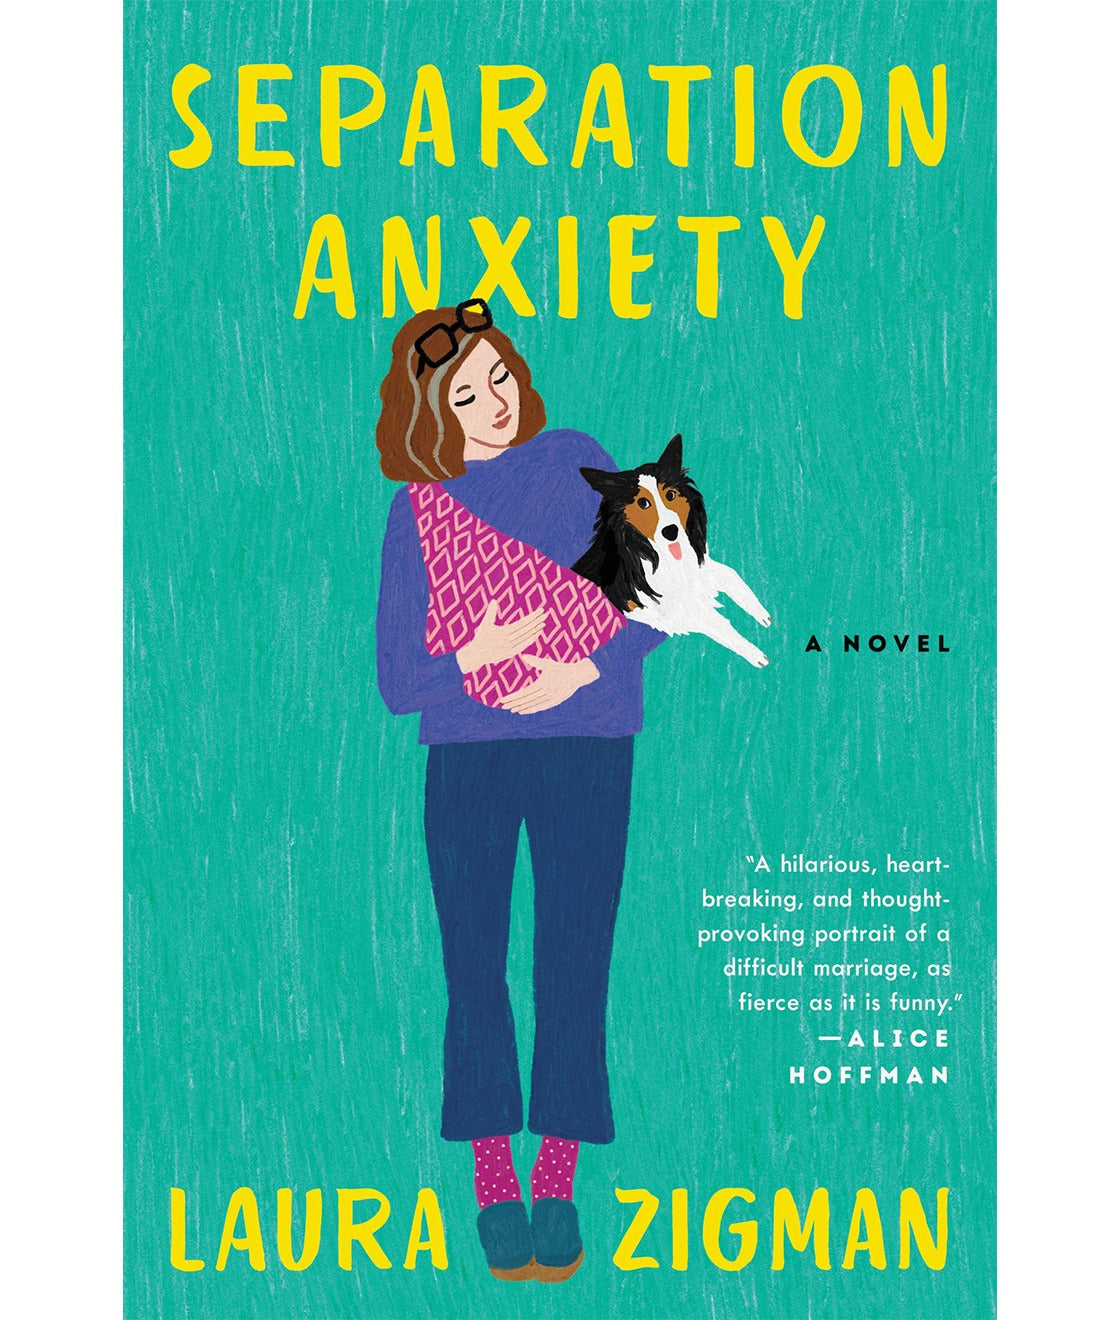 Separation Anxiety by Laura Zigman